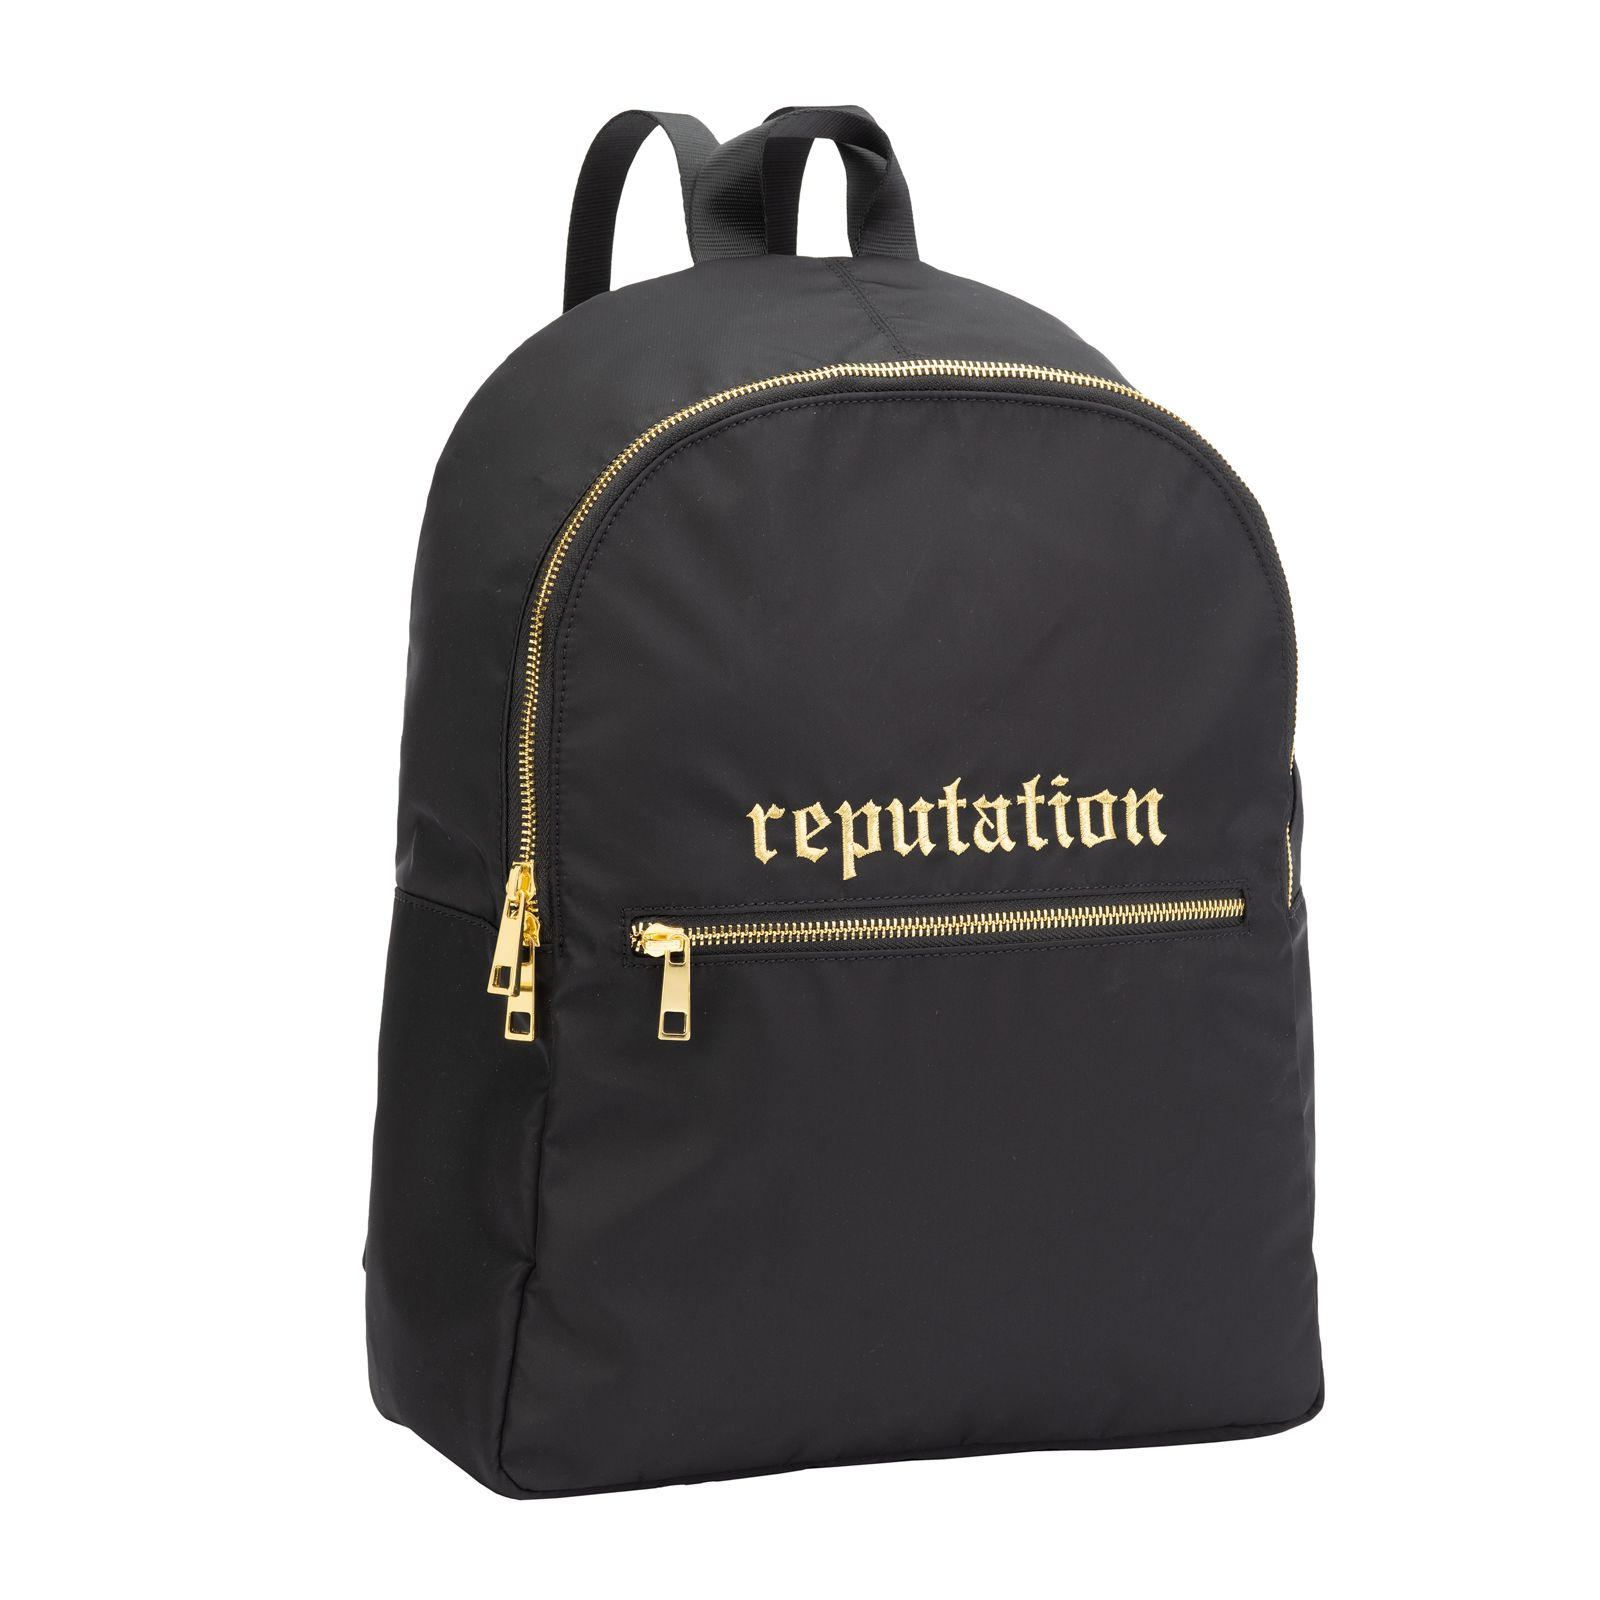 Pin by ???? on Wish List | Taylor swift merchandise, Taylor swift repuation, Taylor ...1600 x 1600